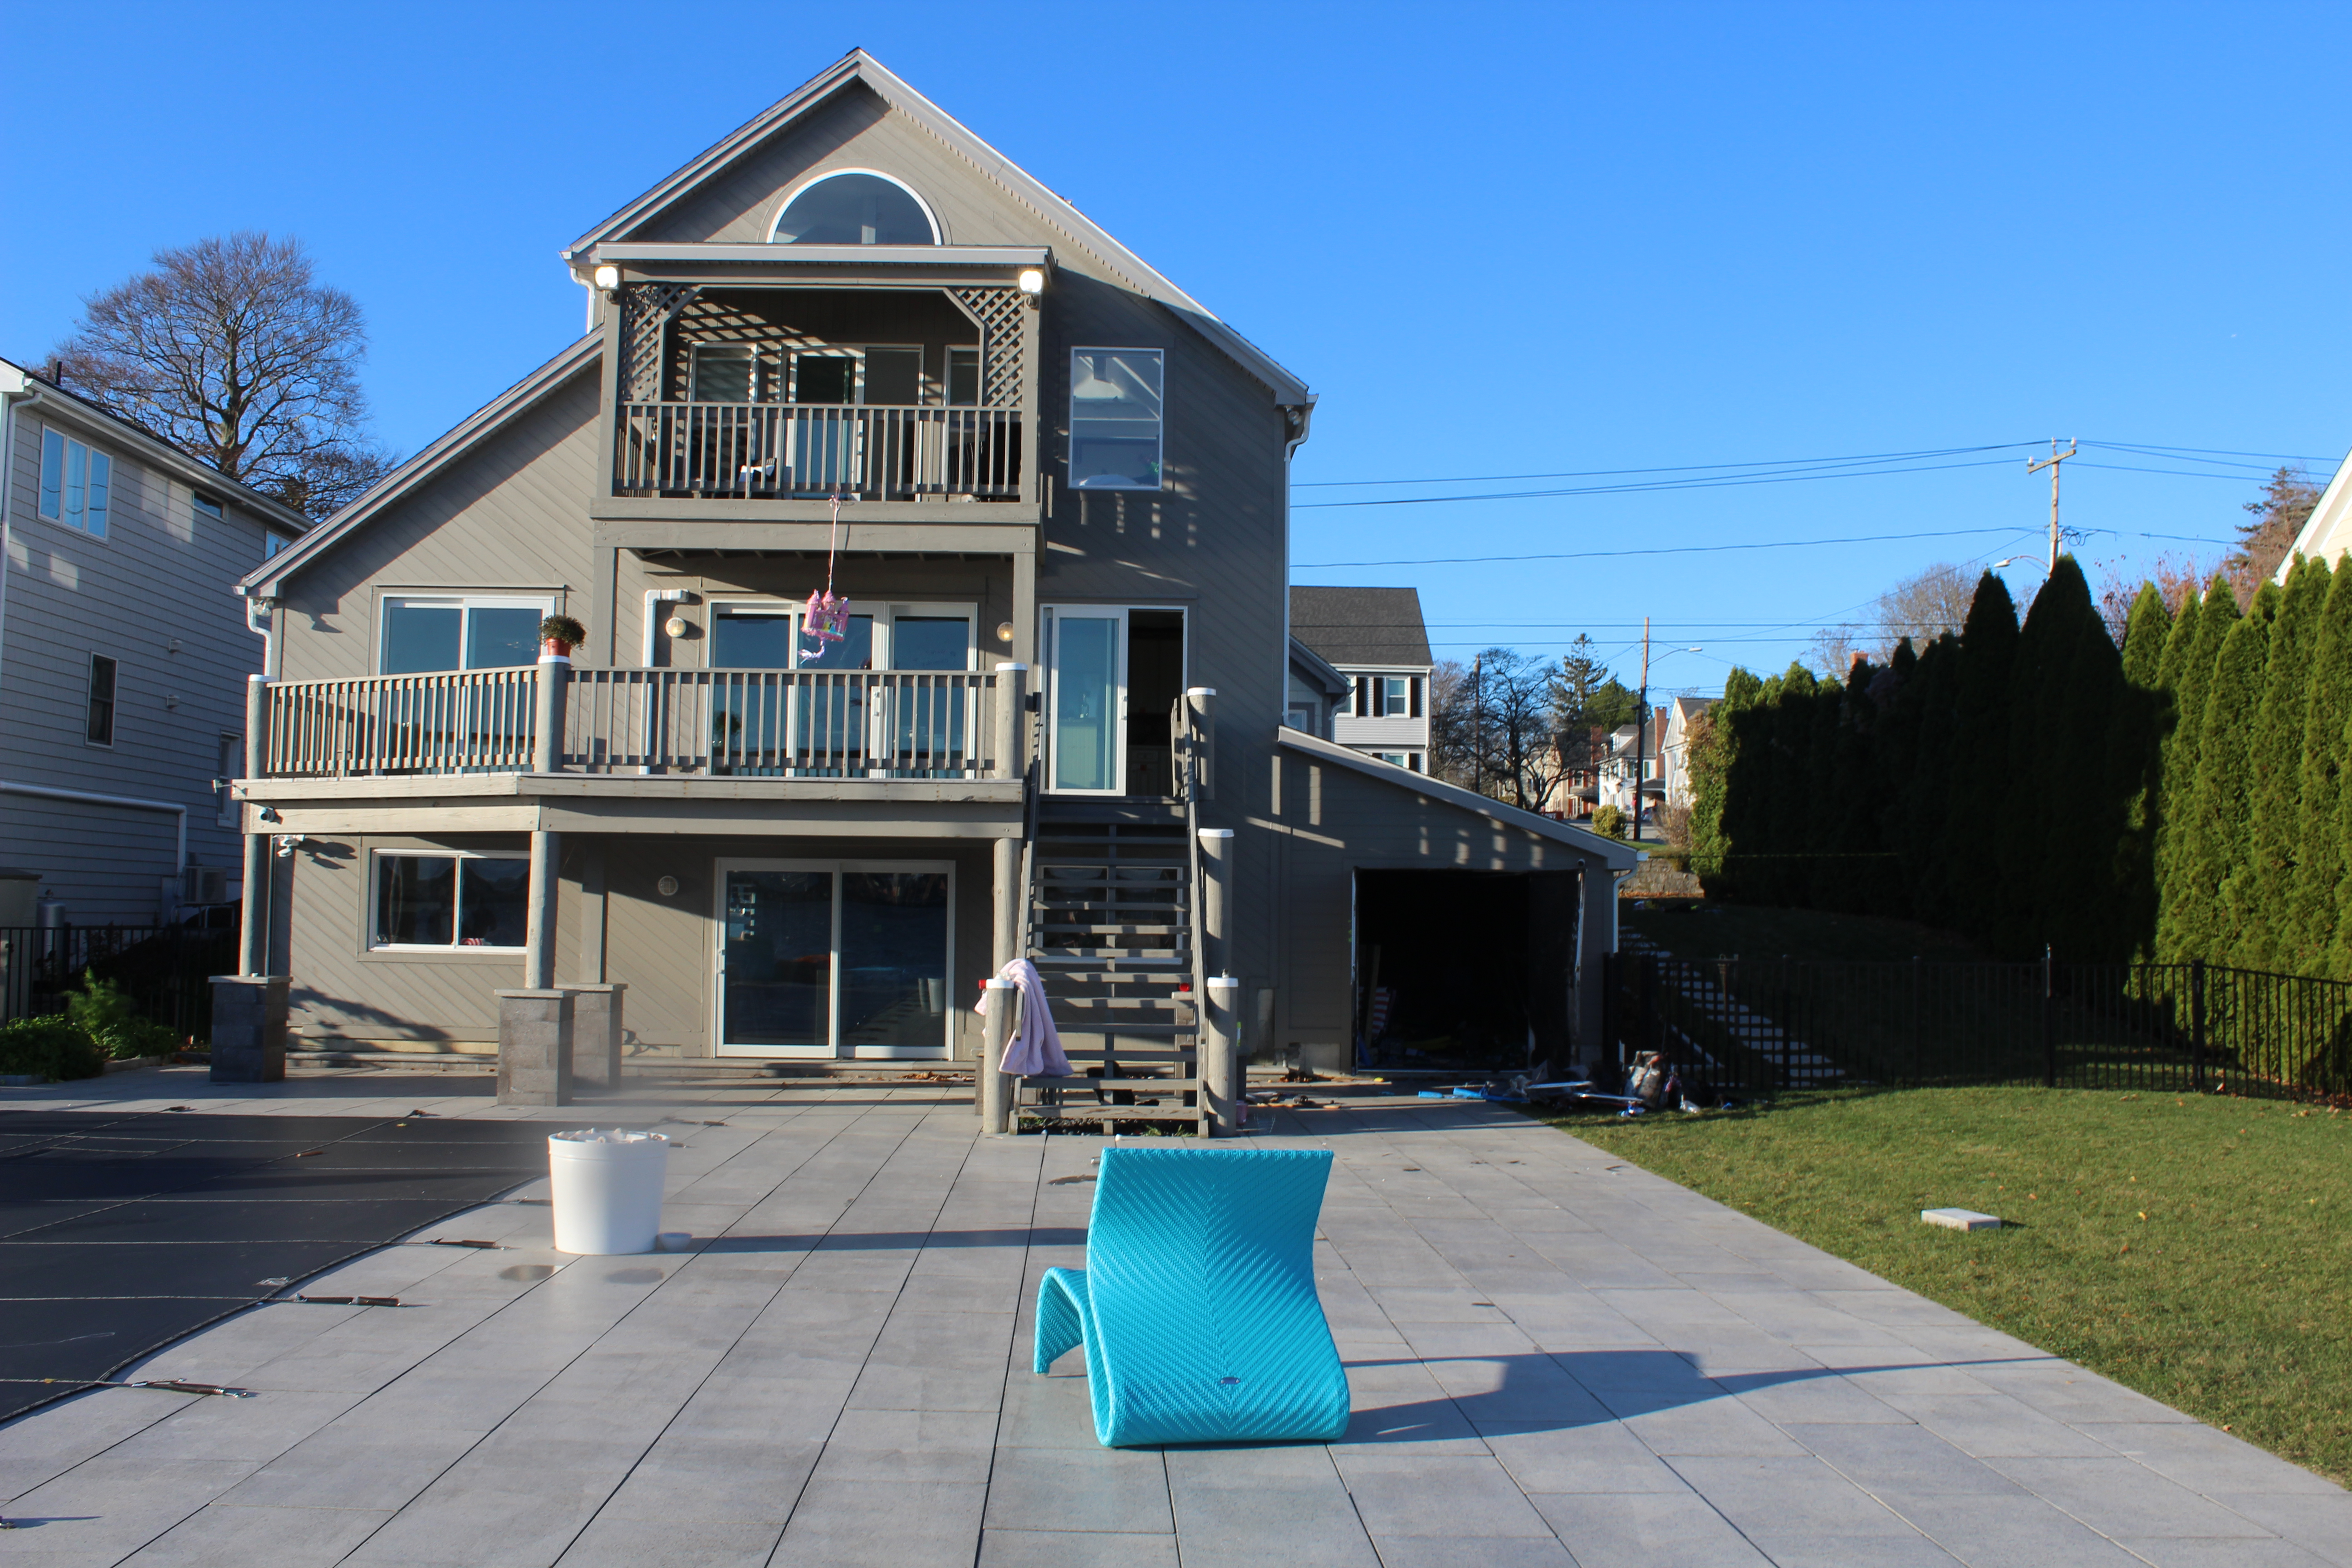 The pool shed at 500 Pequot Avenue is attached to the rear of the house.